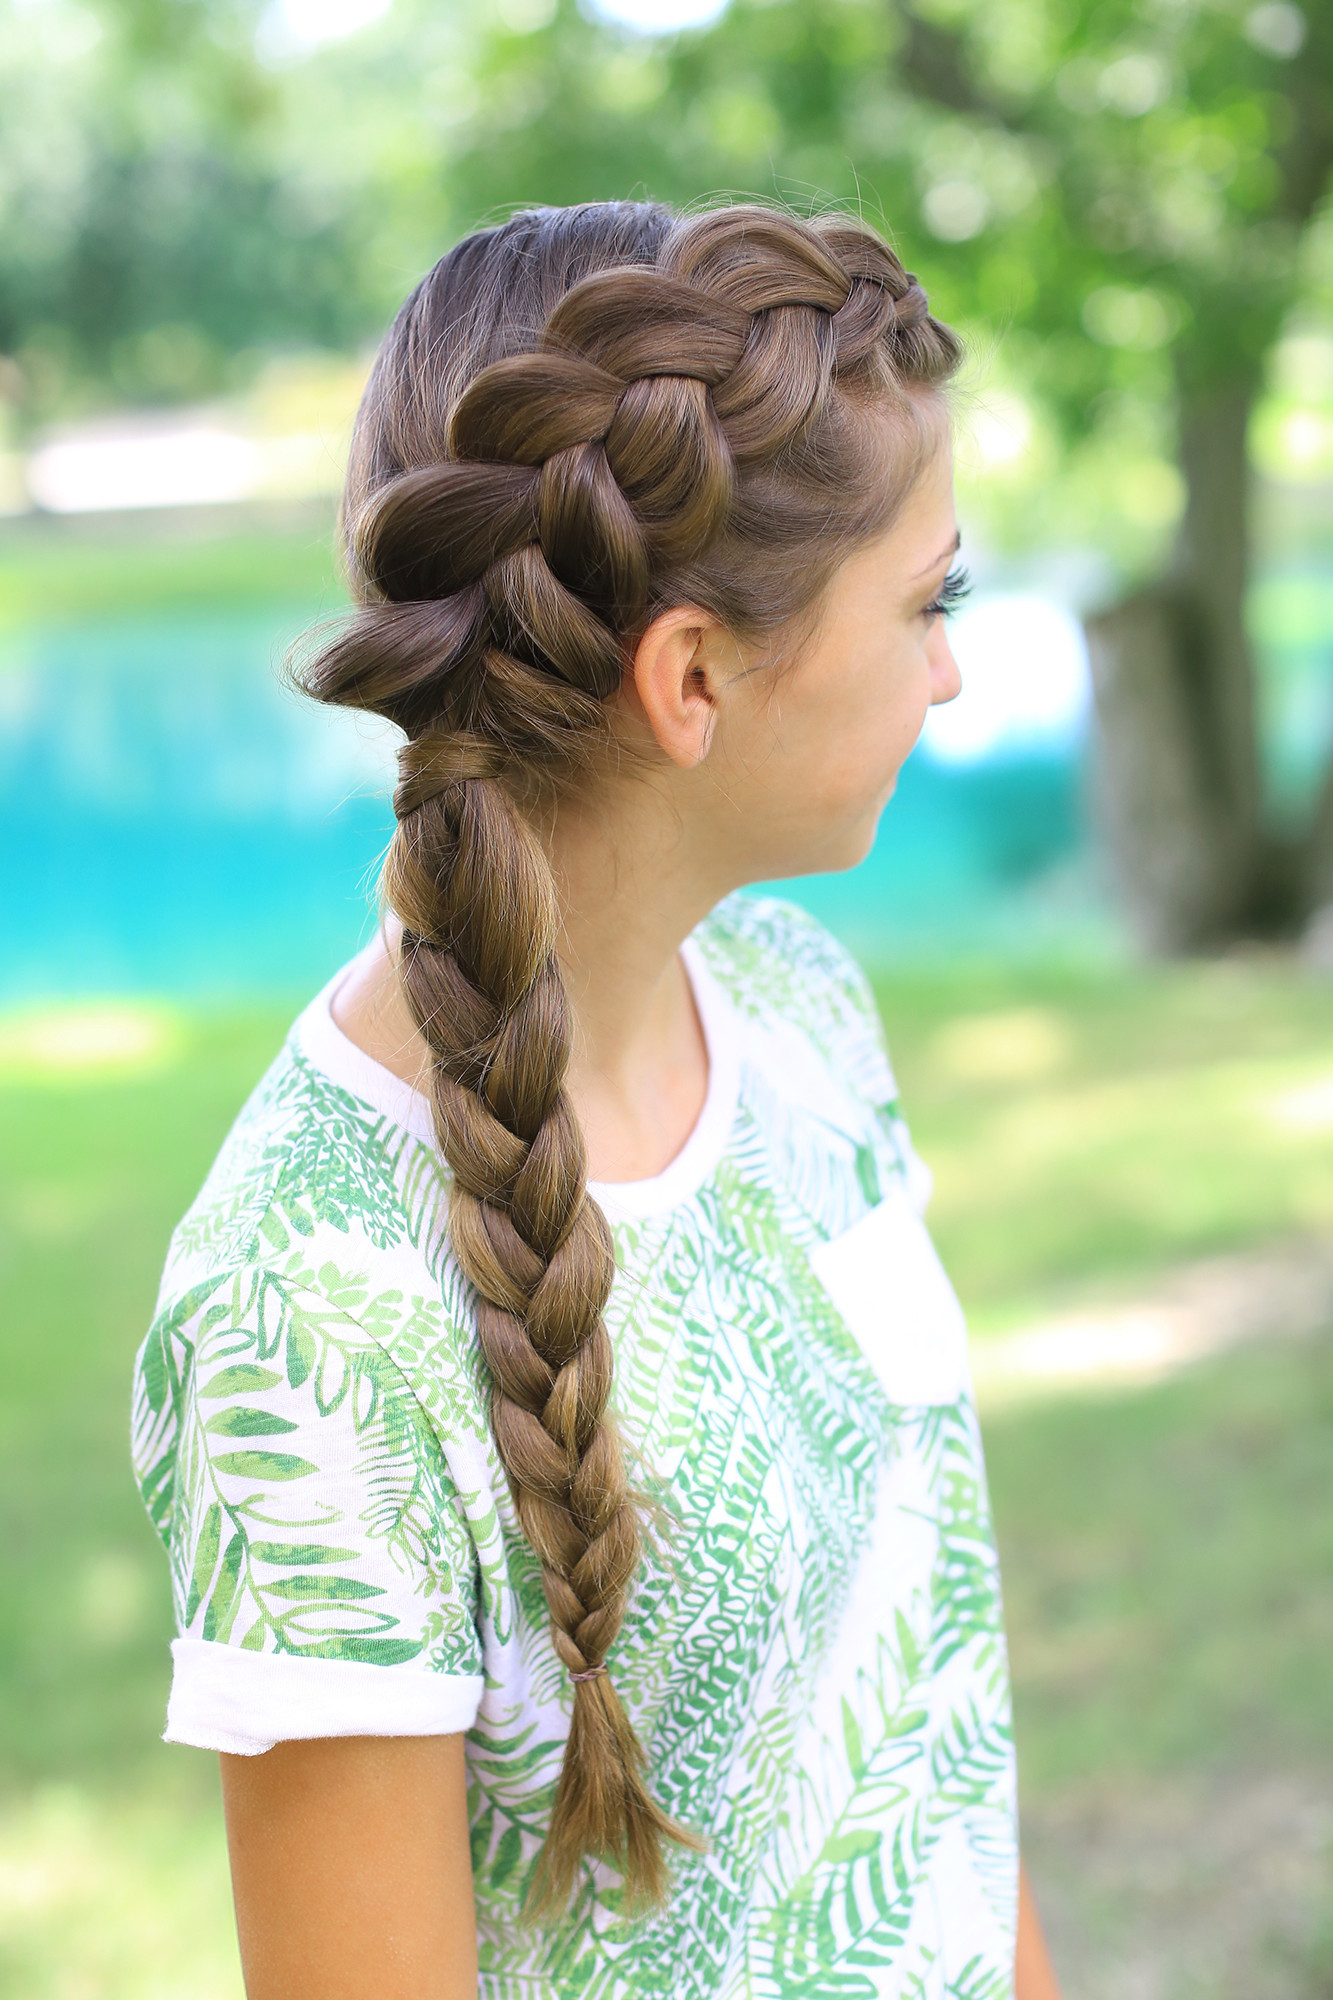 Best ideas about Pretty Girls Hairstyles . Save or Pin Side Dutch Braid bo Now.